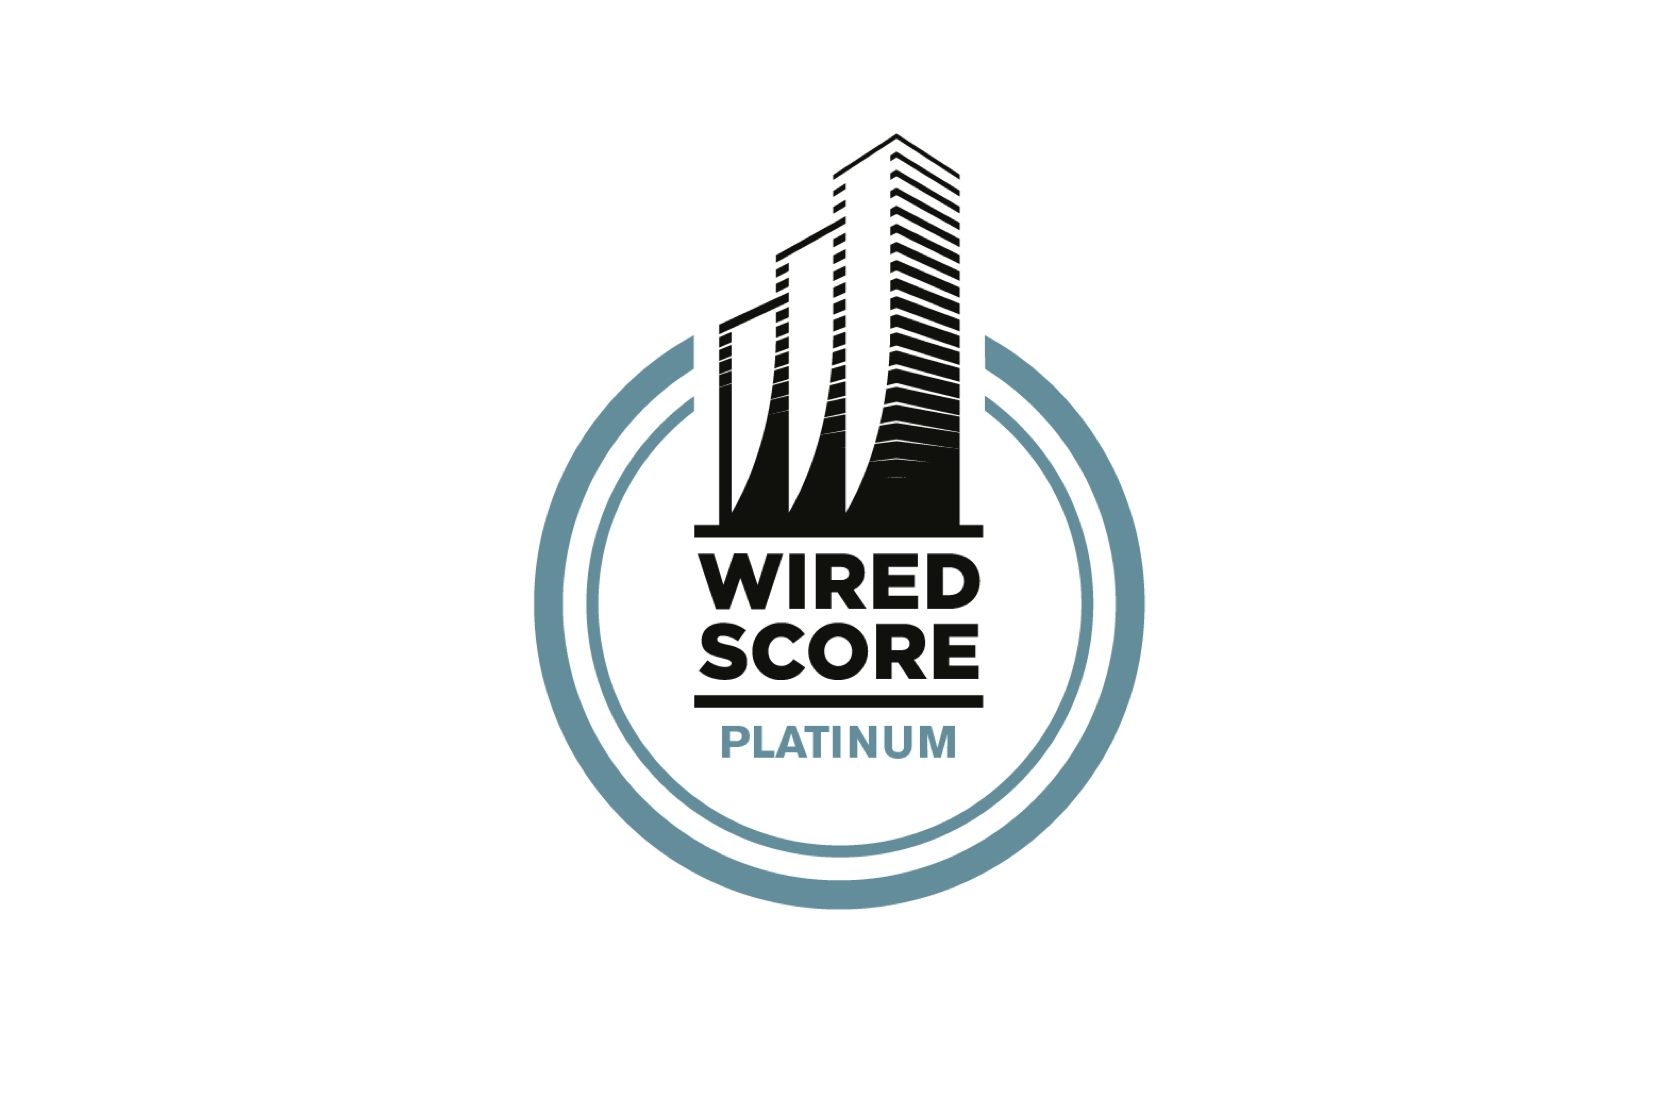 Wired Score